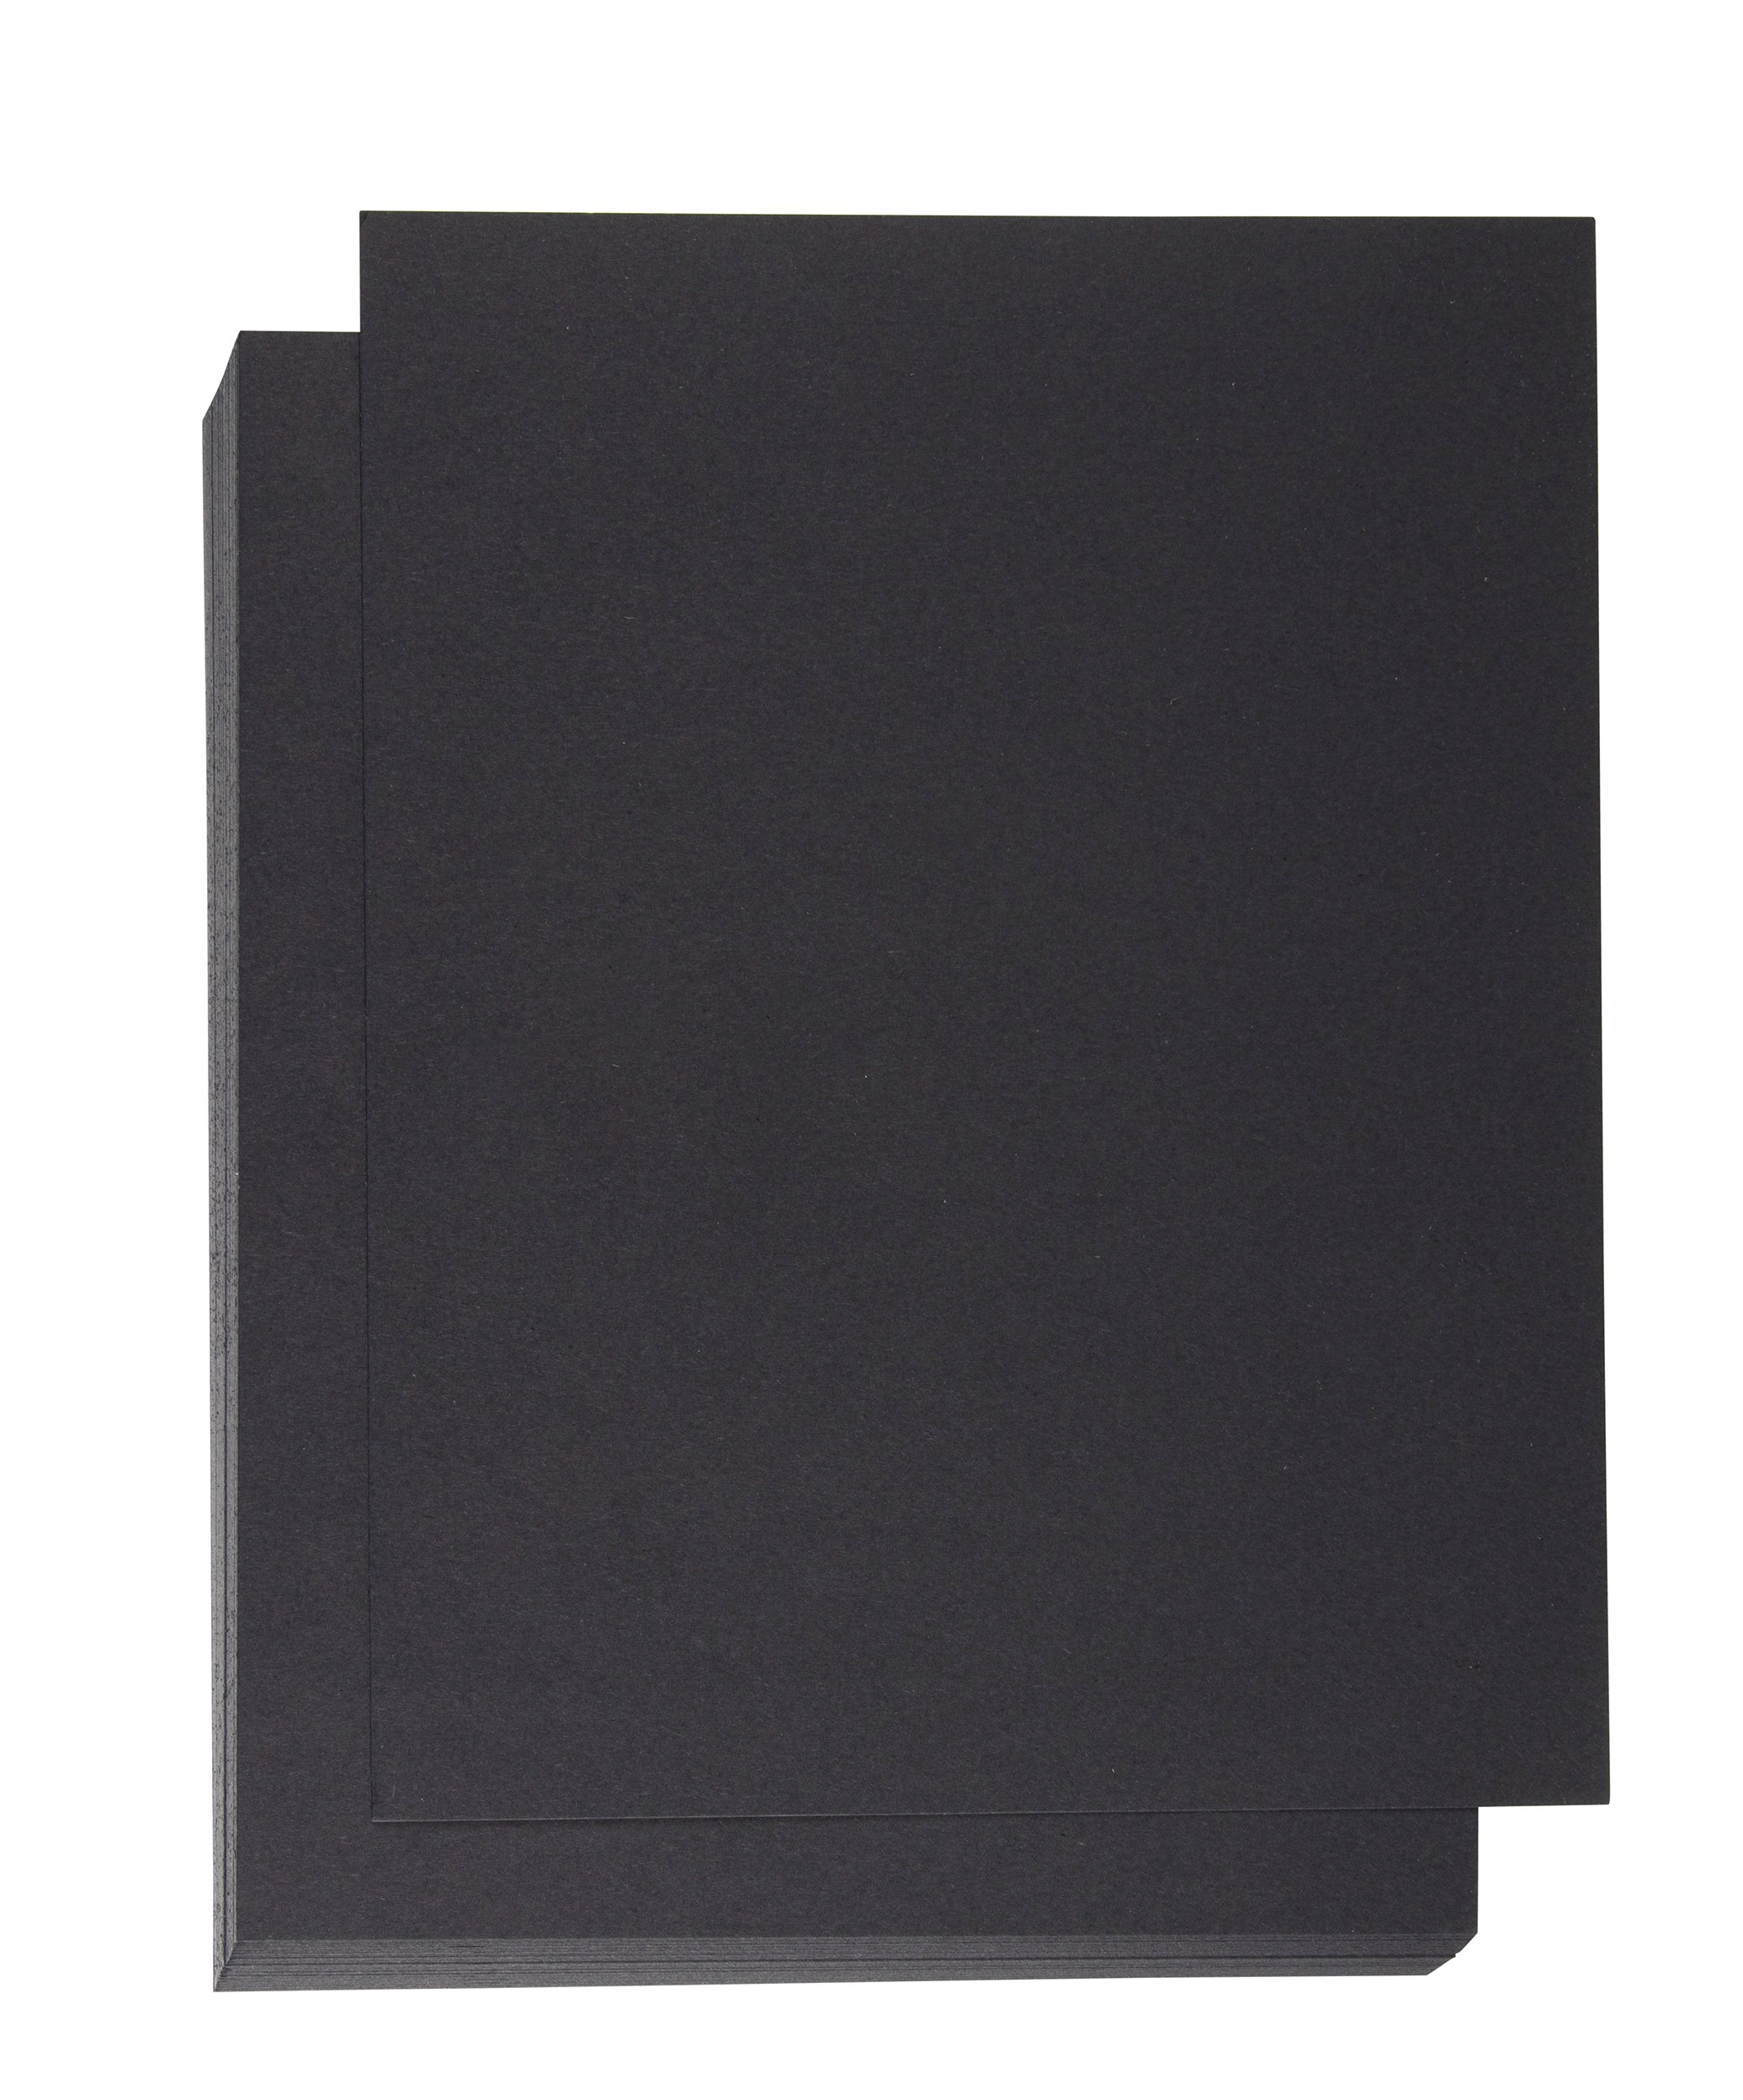 Binding Presentation Cover - 50-Pack Report Cover Paper, Letter Sized Cardstock Paper for Business Documents, School Projects, Un-Punched, 300GSM, Black, 8.5 x 11 inches